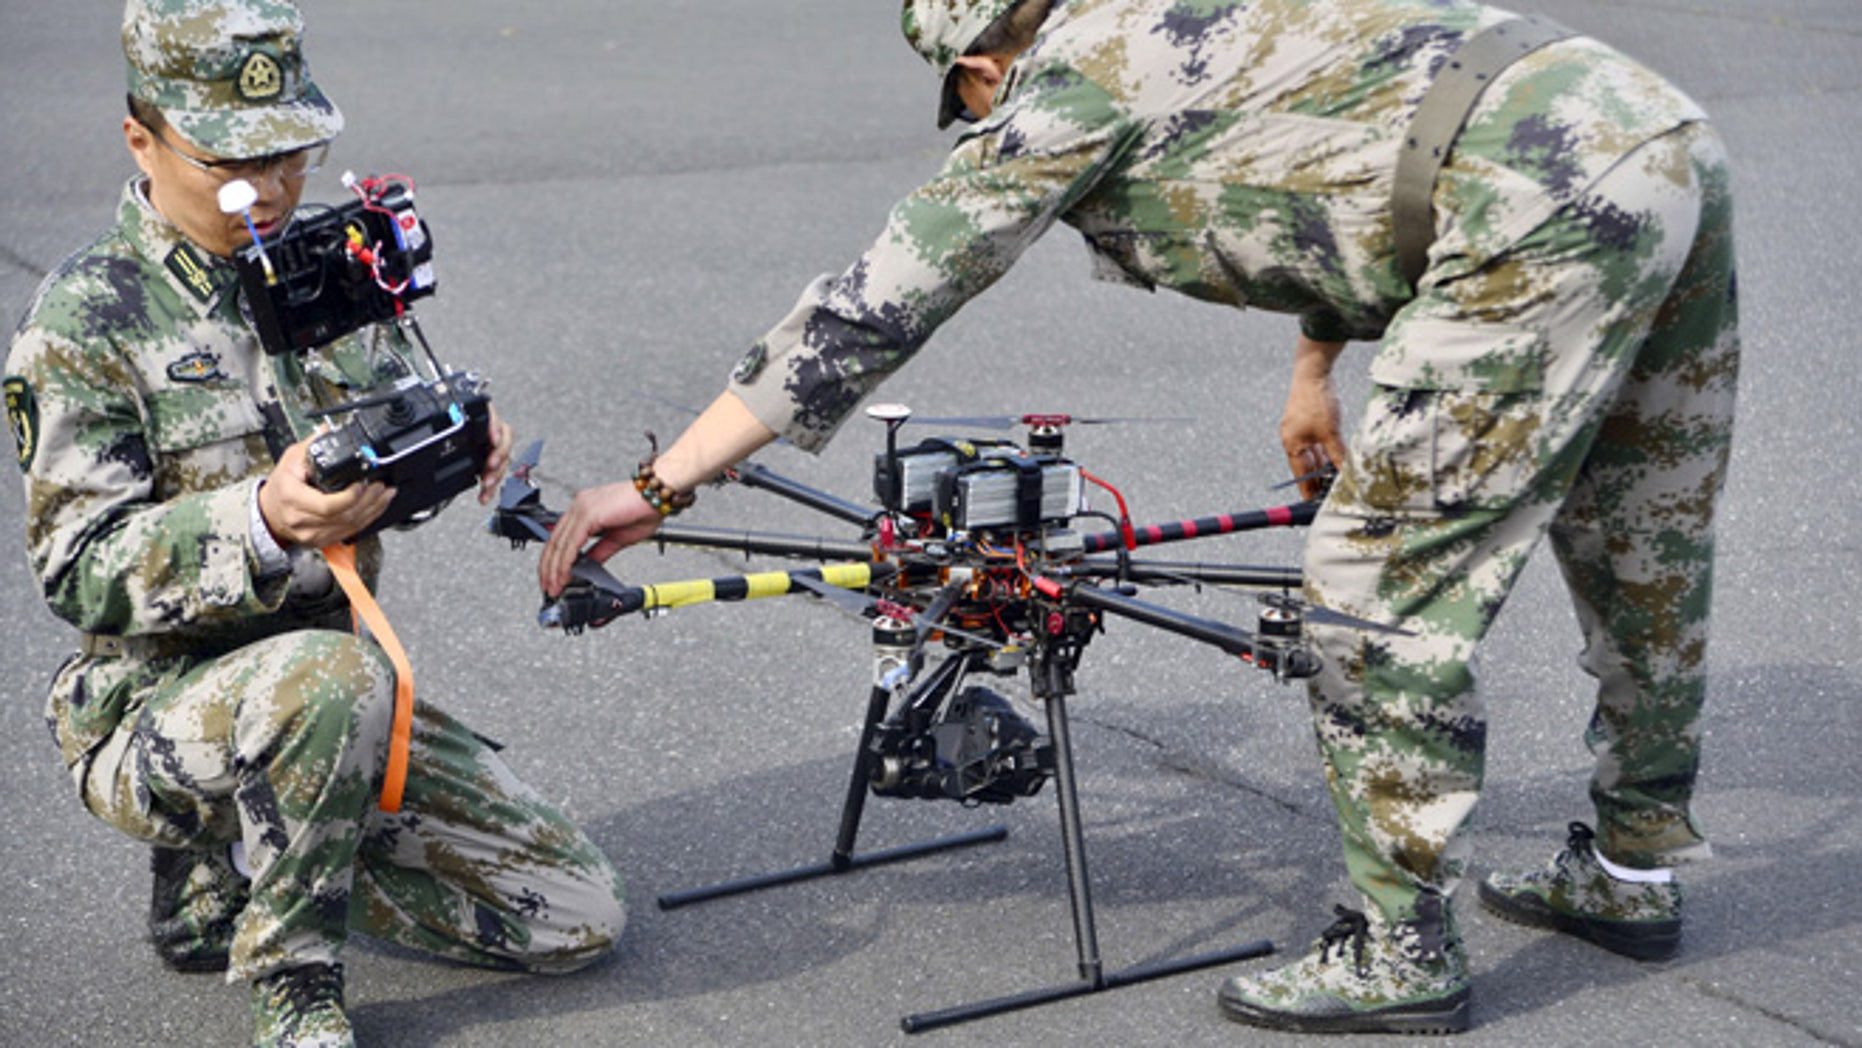 April 21, 2015: A pair of militia members prepare to fly drones during a test in Shanghai, China.